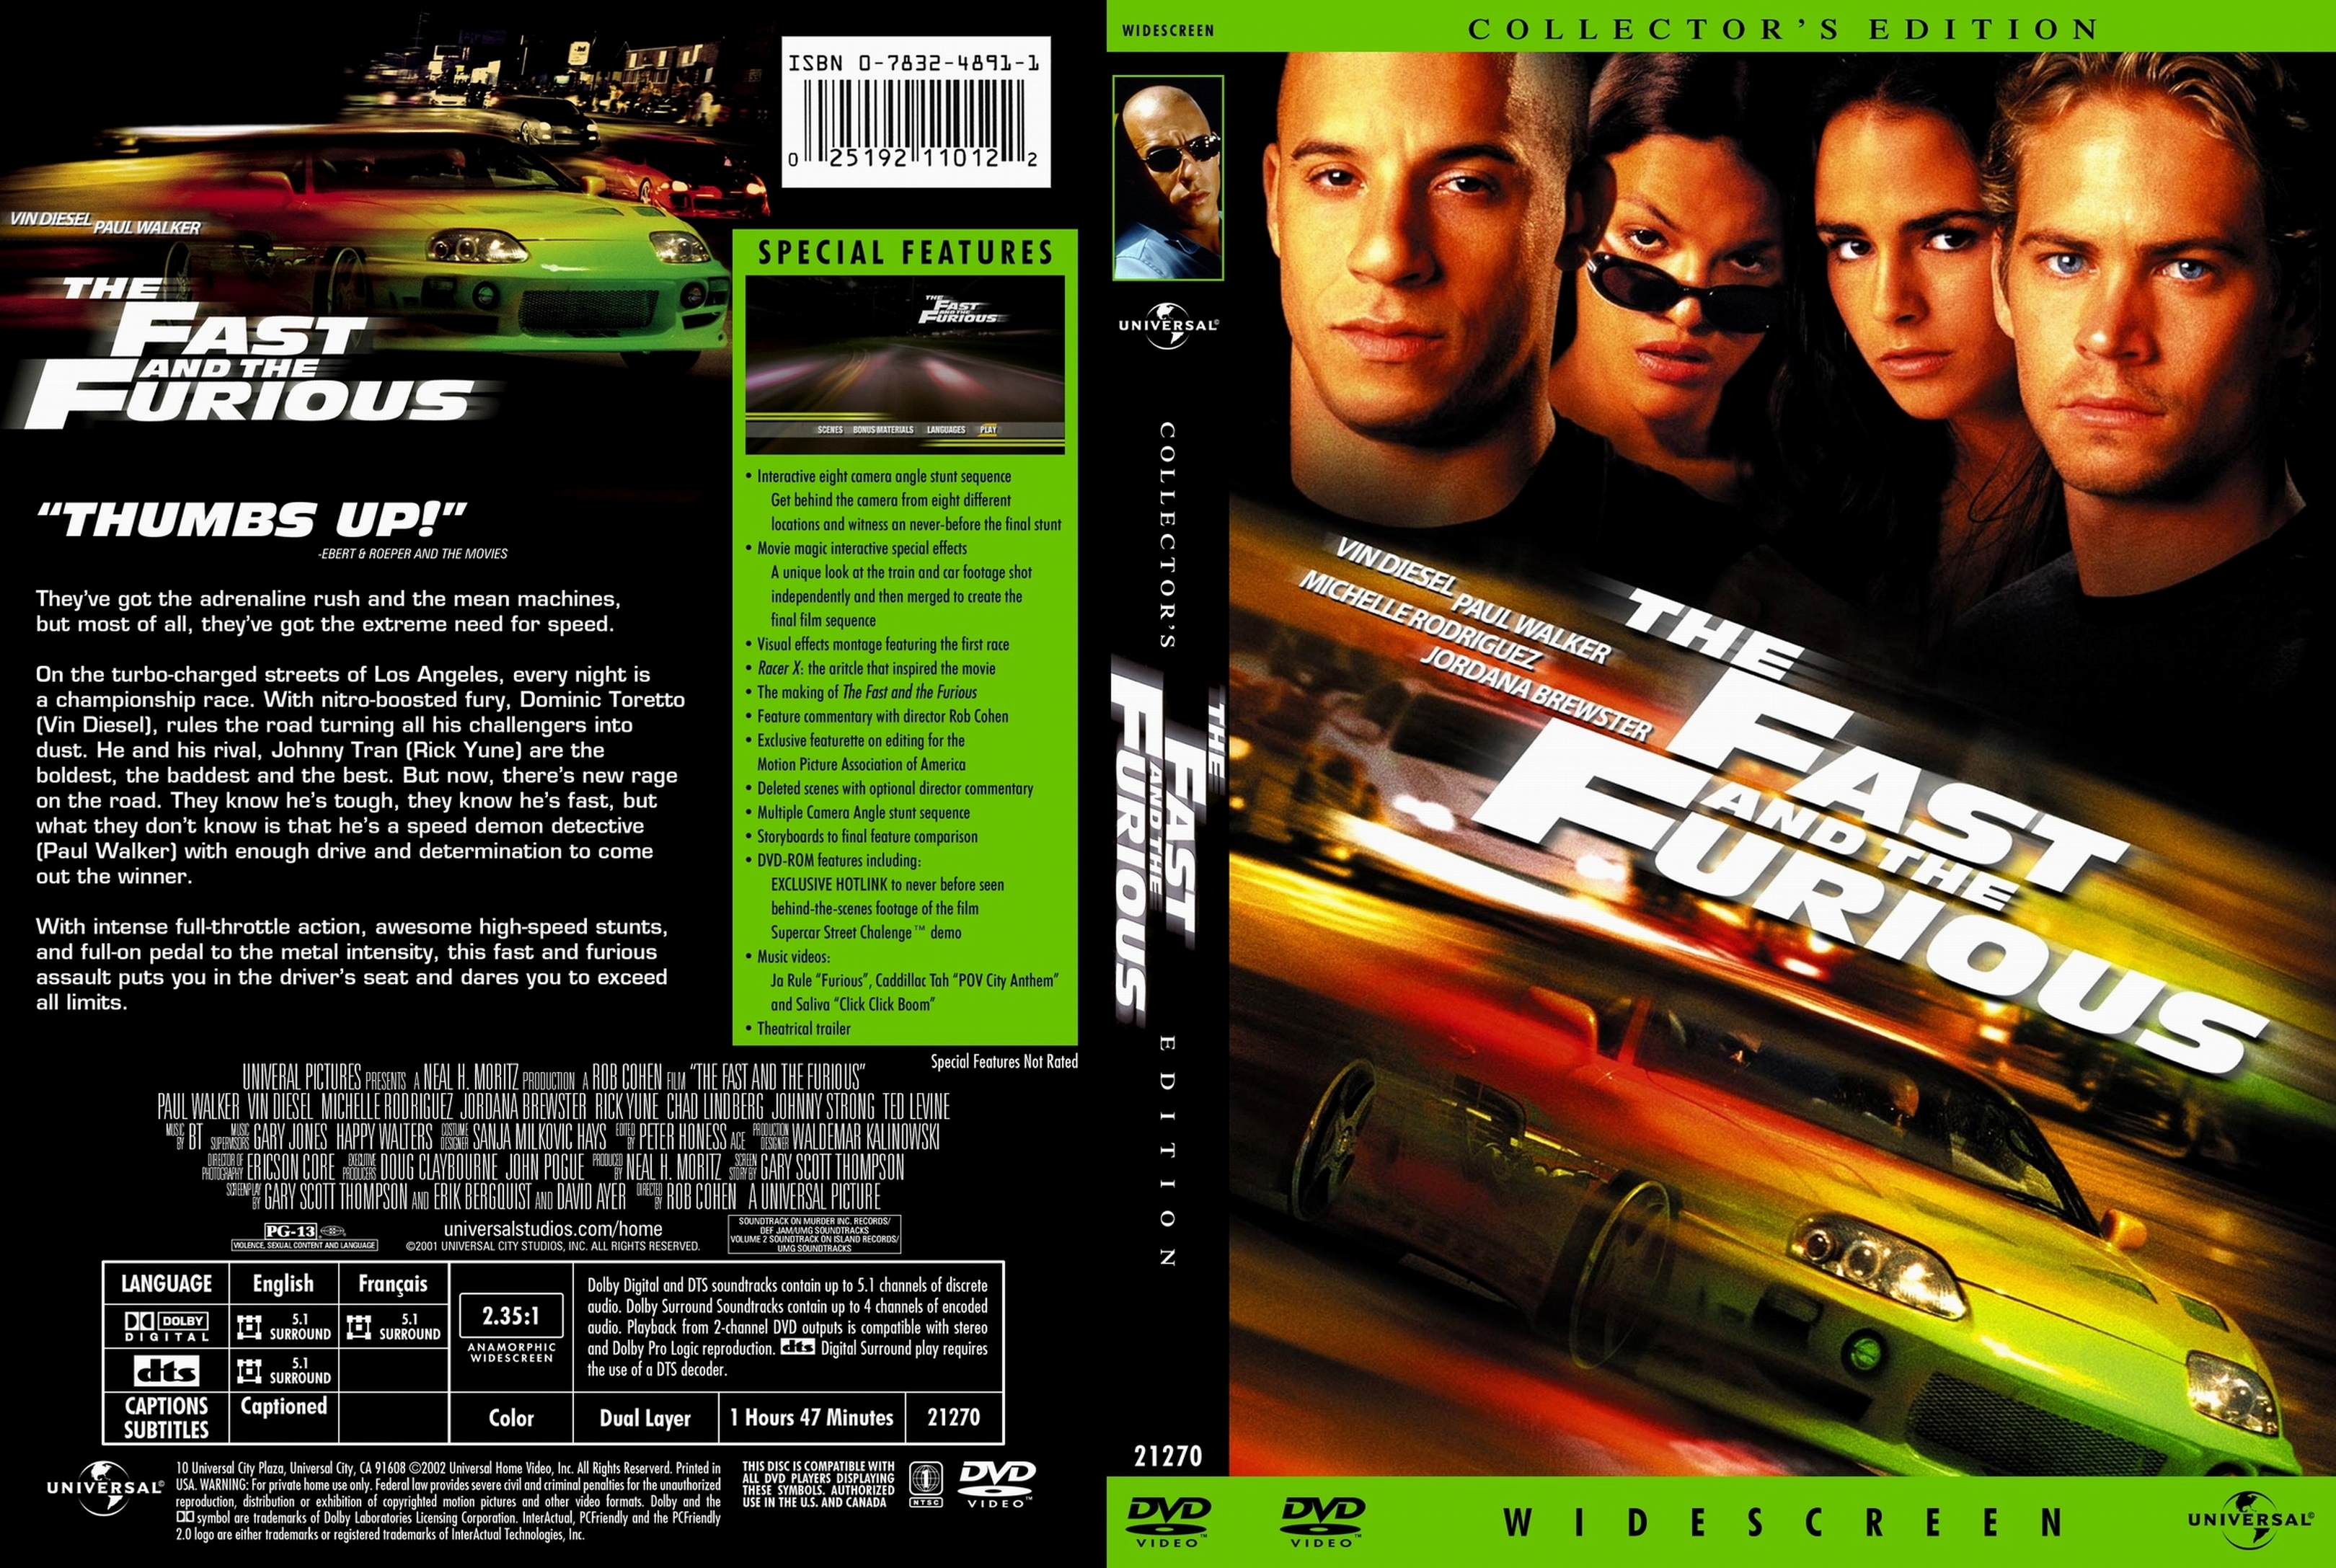 The Fast And The Furious 2001 Dvd Covers Cover Century Over 500 000 Album Art Covers For Free